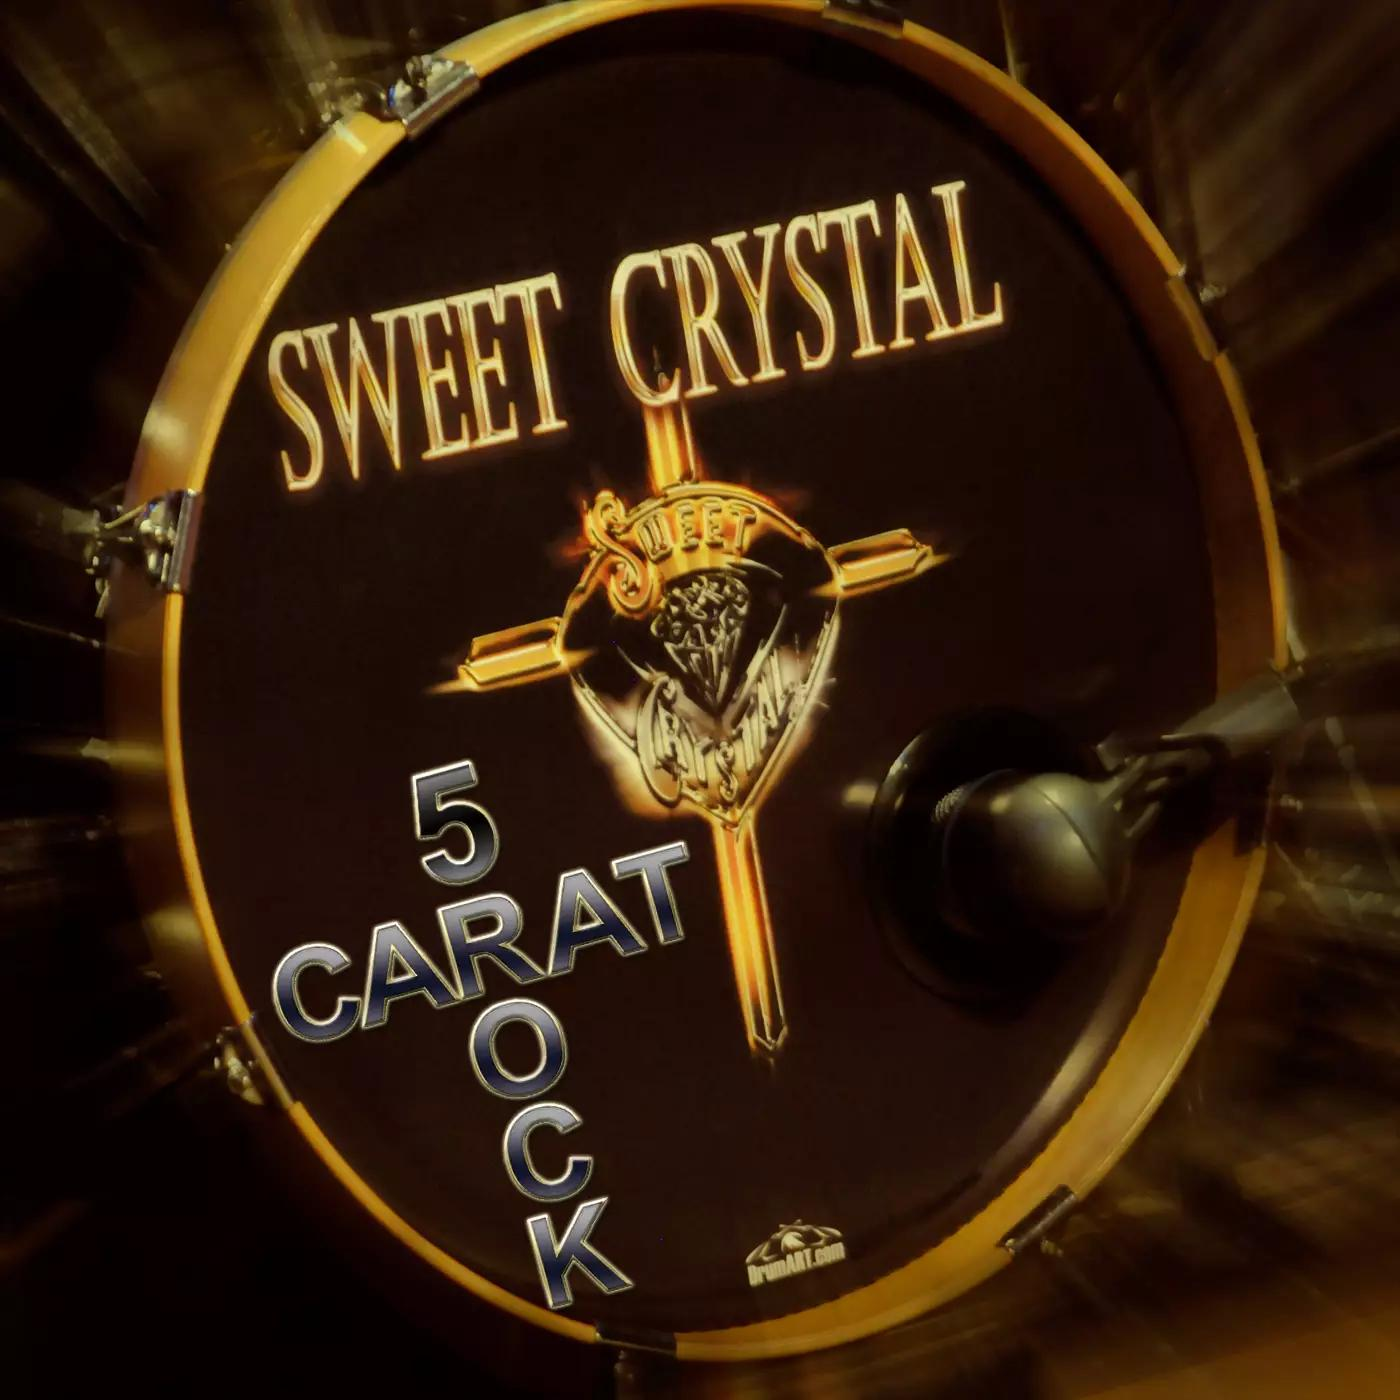 SWEET-CRYSTAL-225-Carat-Rock22-CD-Cover